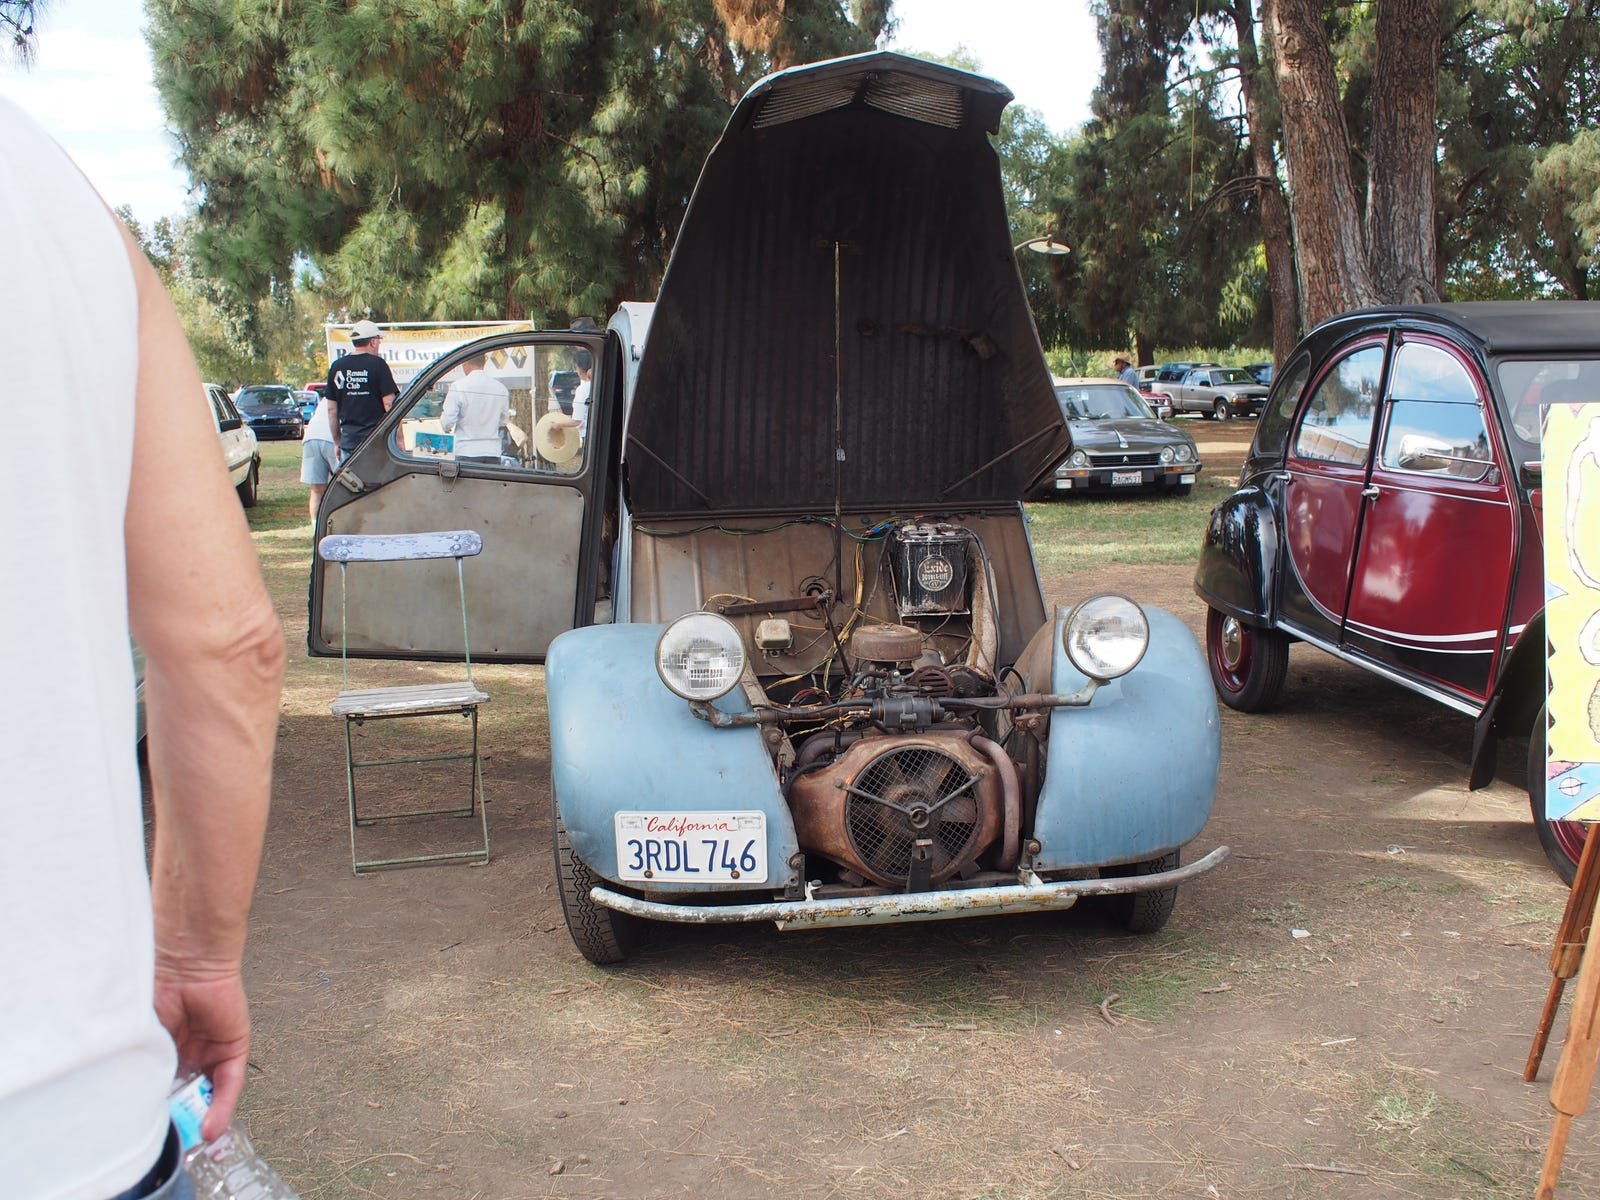 This all original 1958 2CV has what I think is the oldest battery in a running car that I've ever seen.